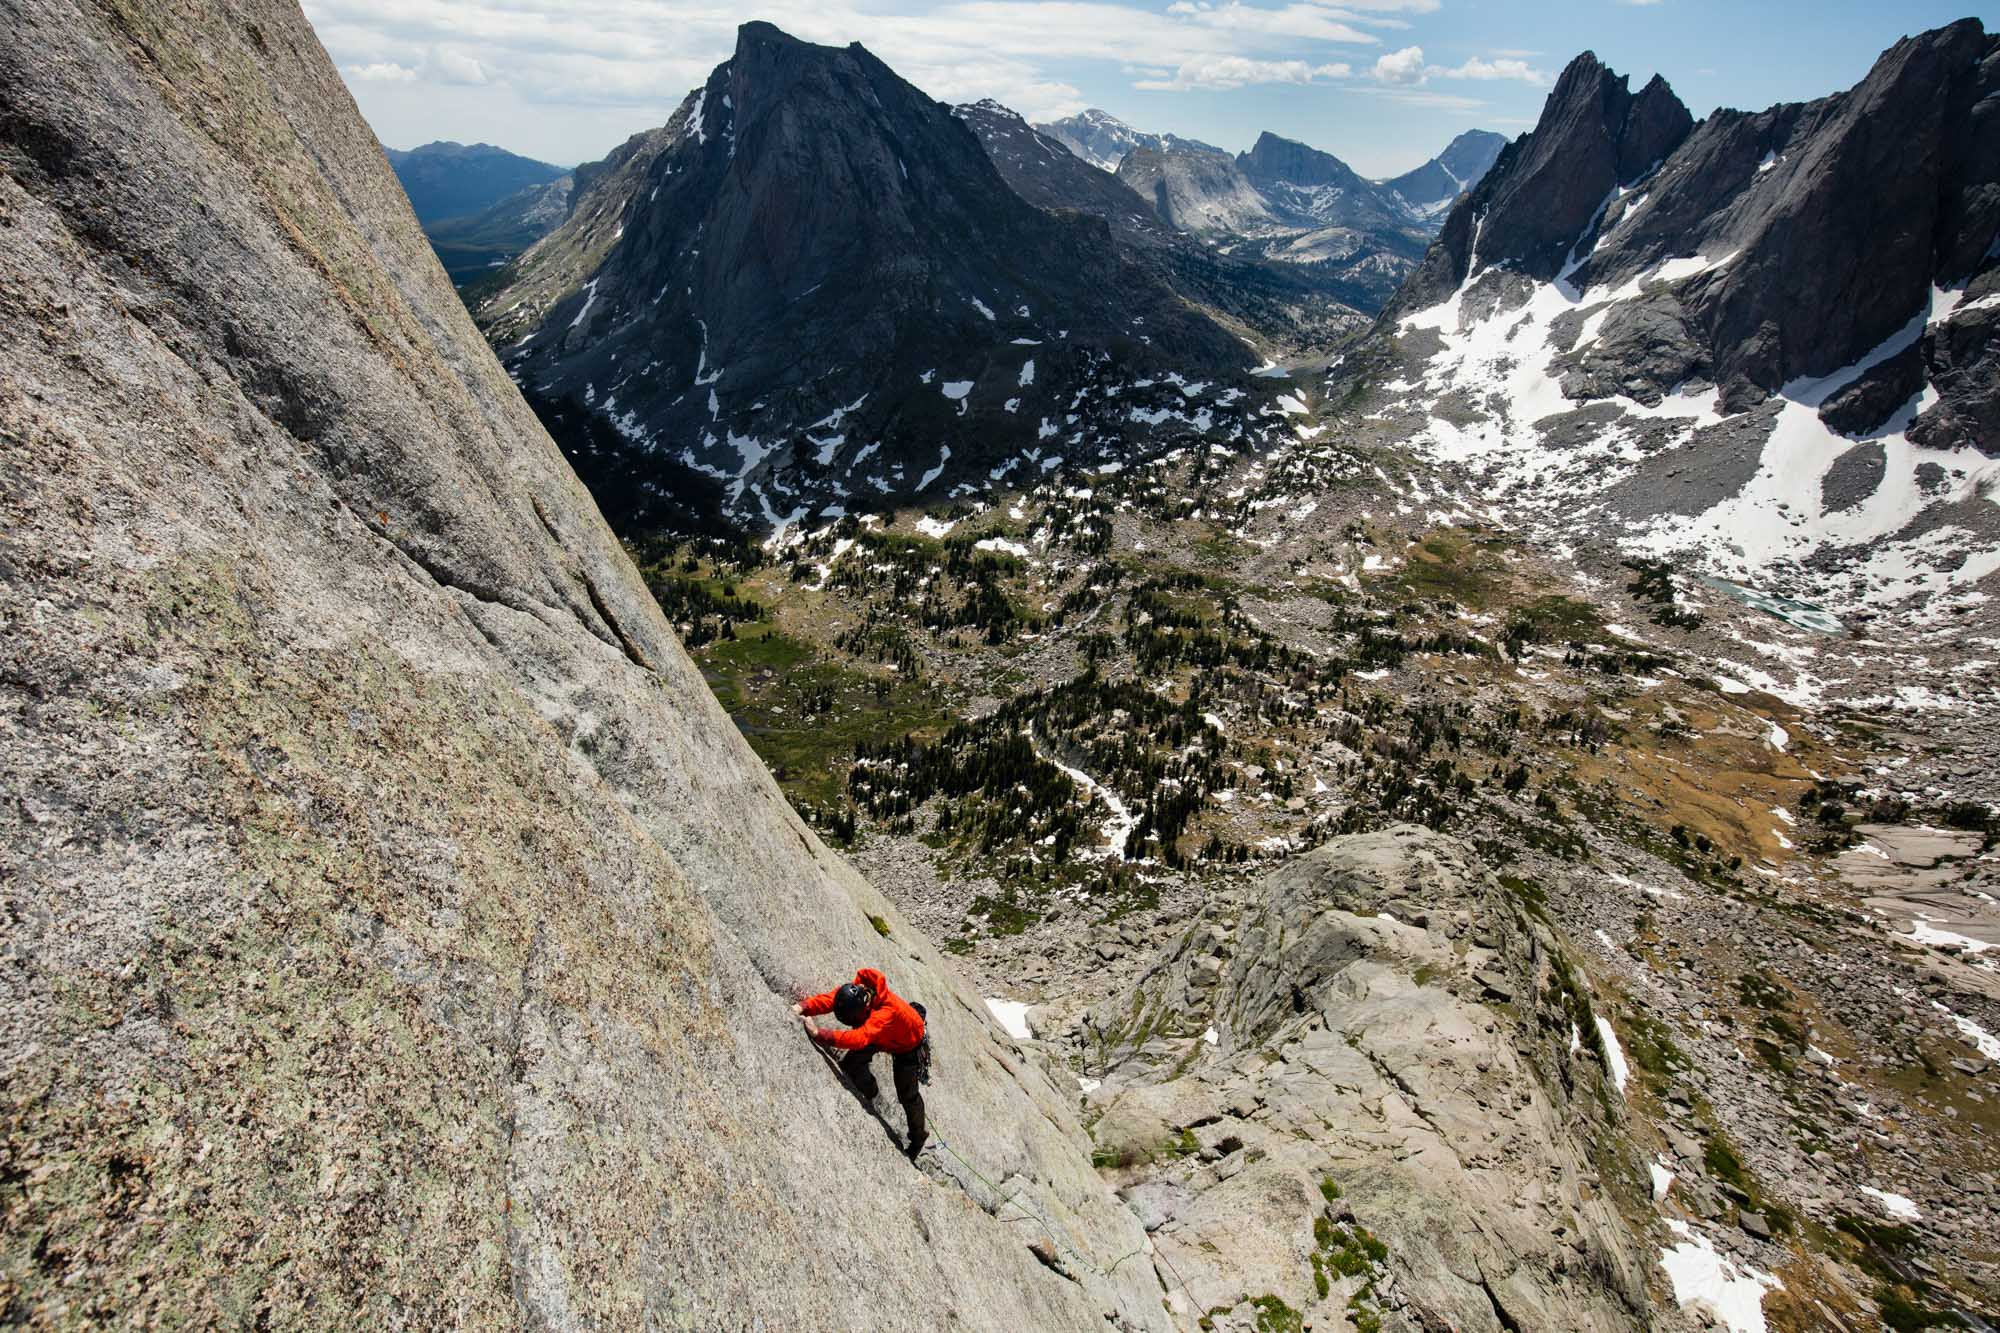 Wind River Range, Wyoming Rock Climbing | Action Sports Photography